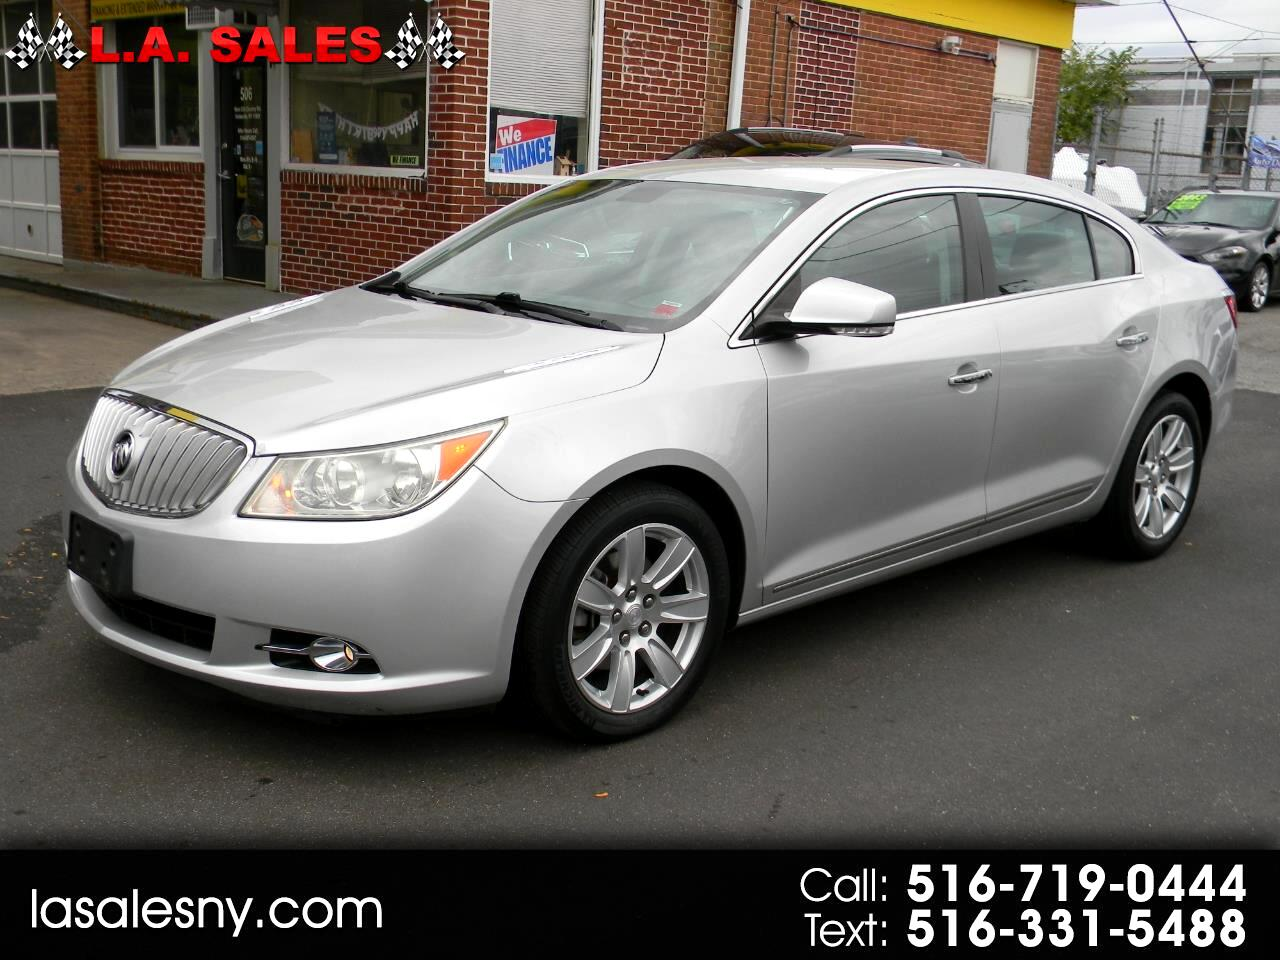 2012 Buick LaCrosse 4dr Sdn CXL FWD